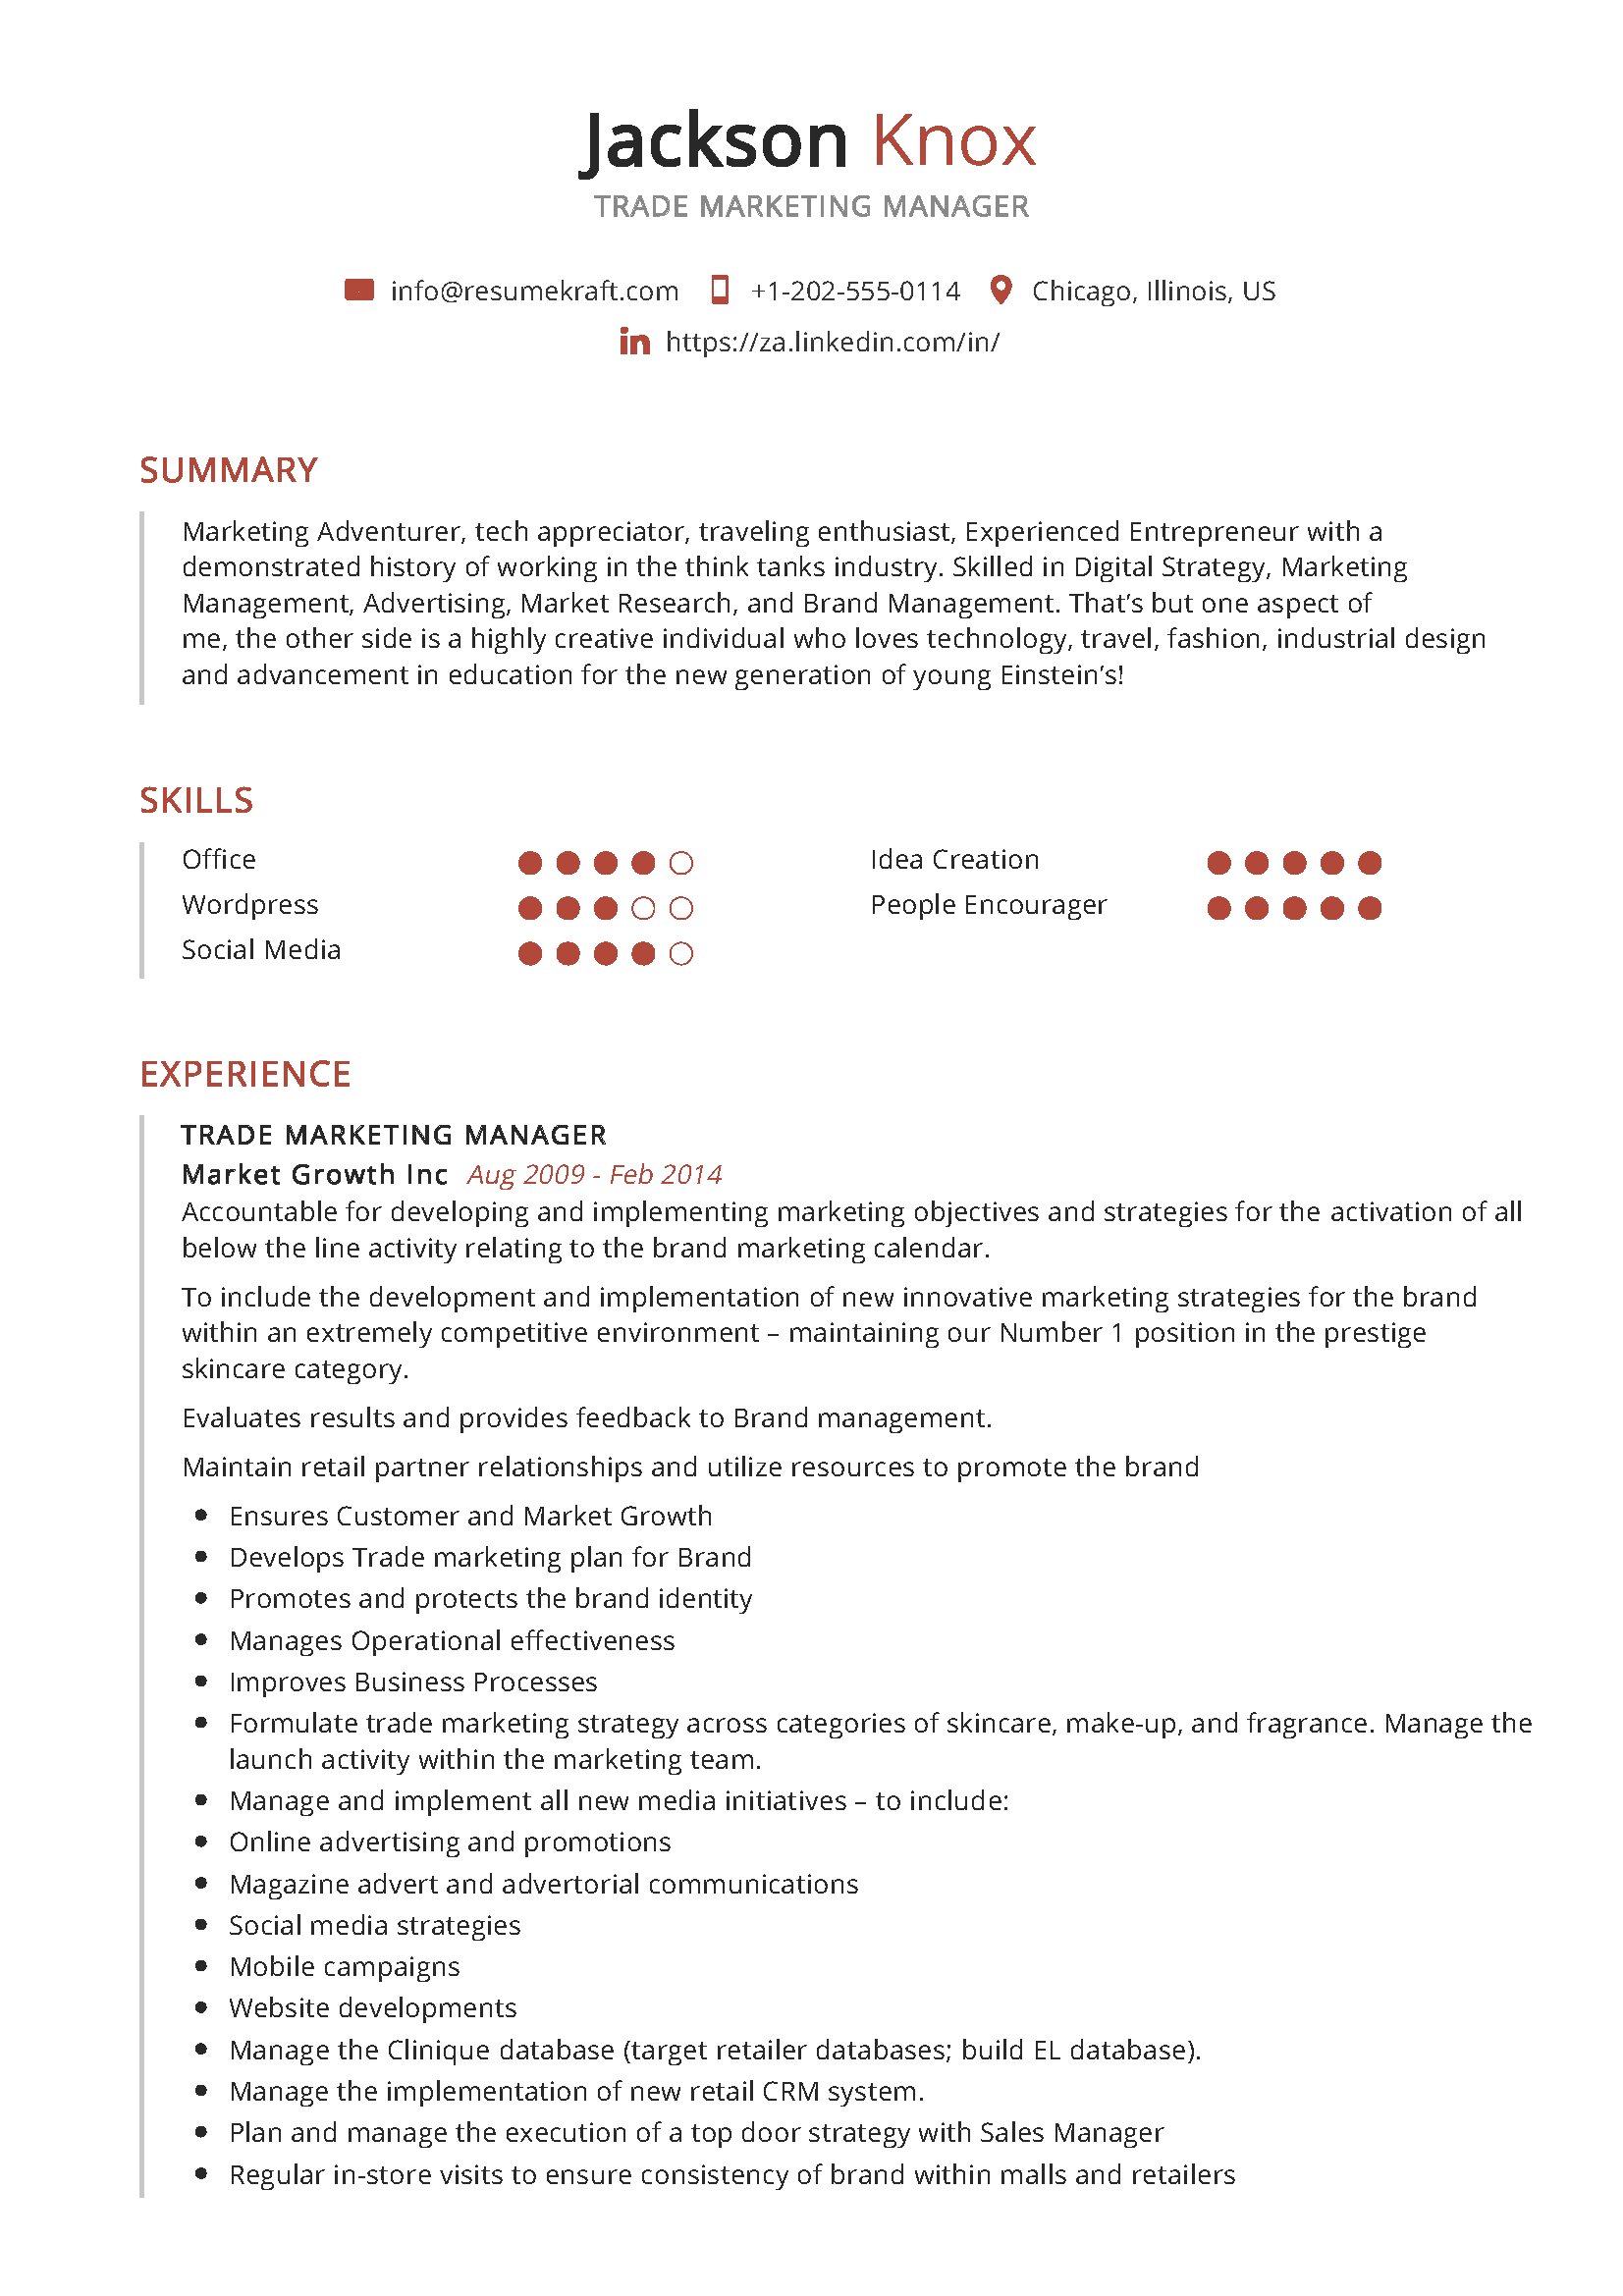 Trade Marketing Manager Resume Sample Resumekraft